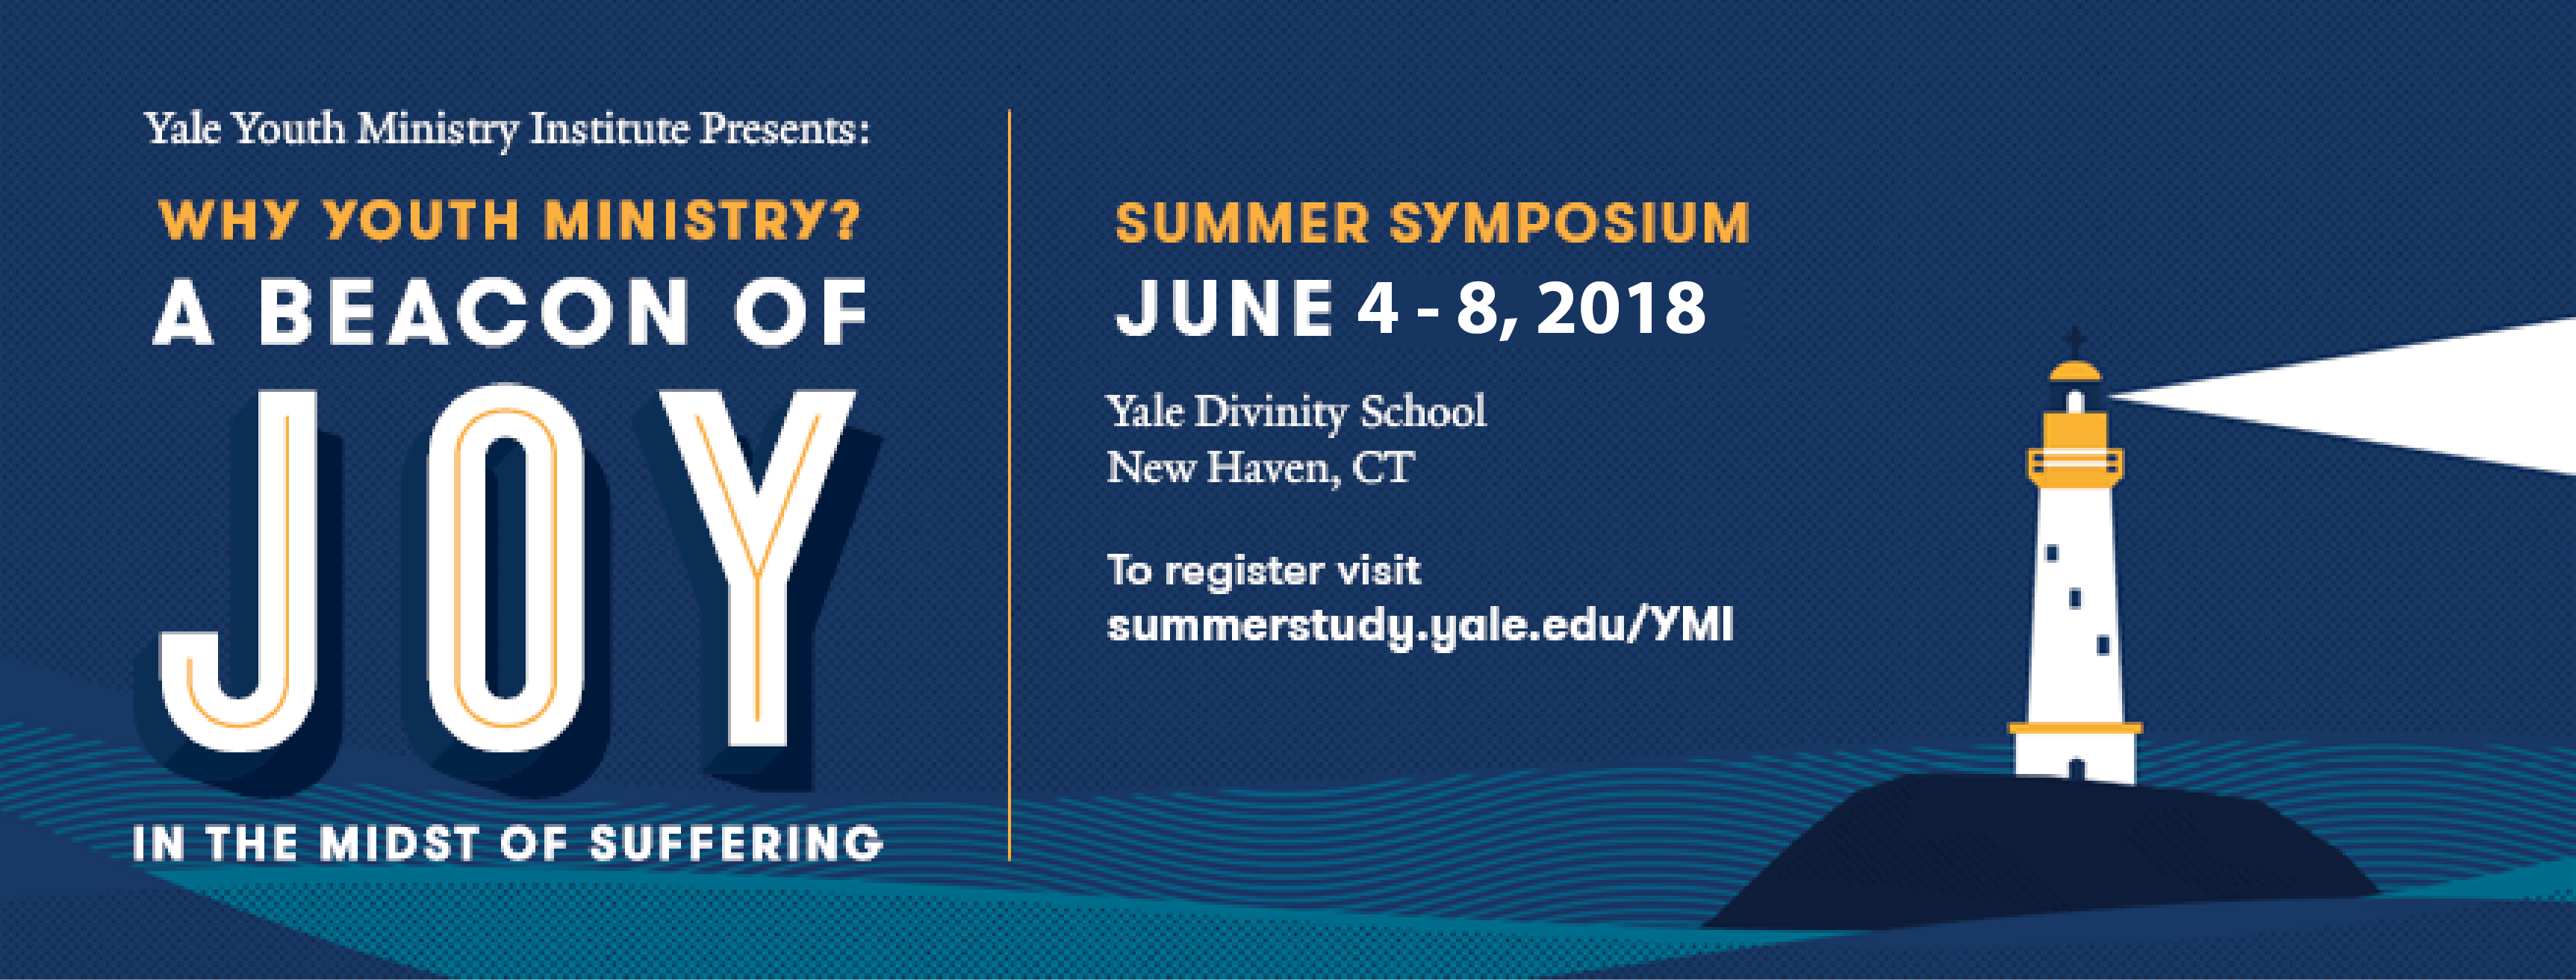 Yale Youth Ministry Institute Summer Symposiu